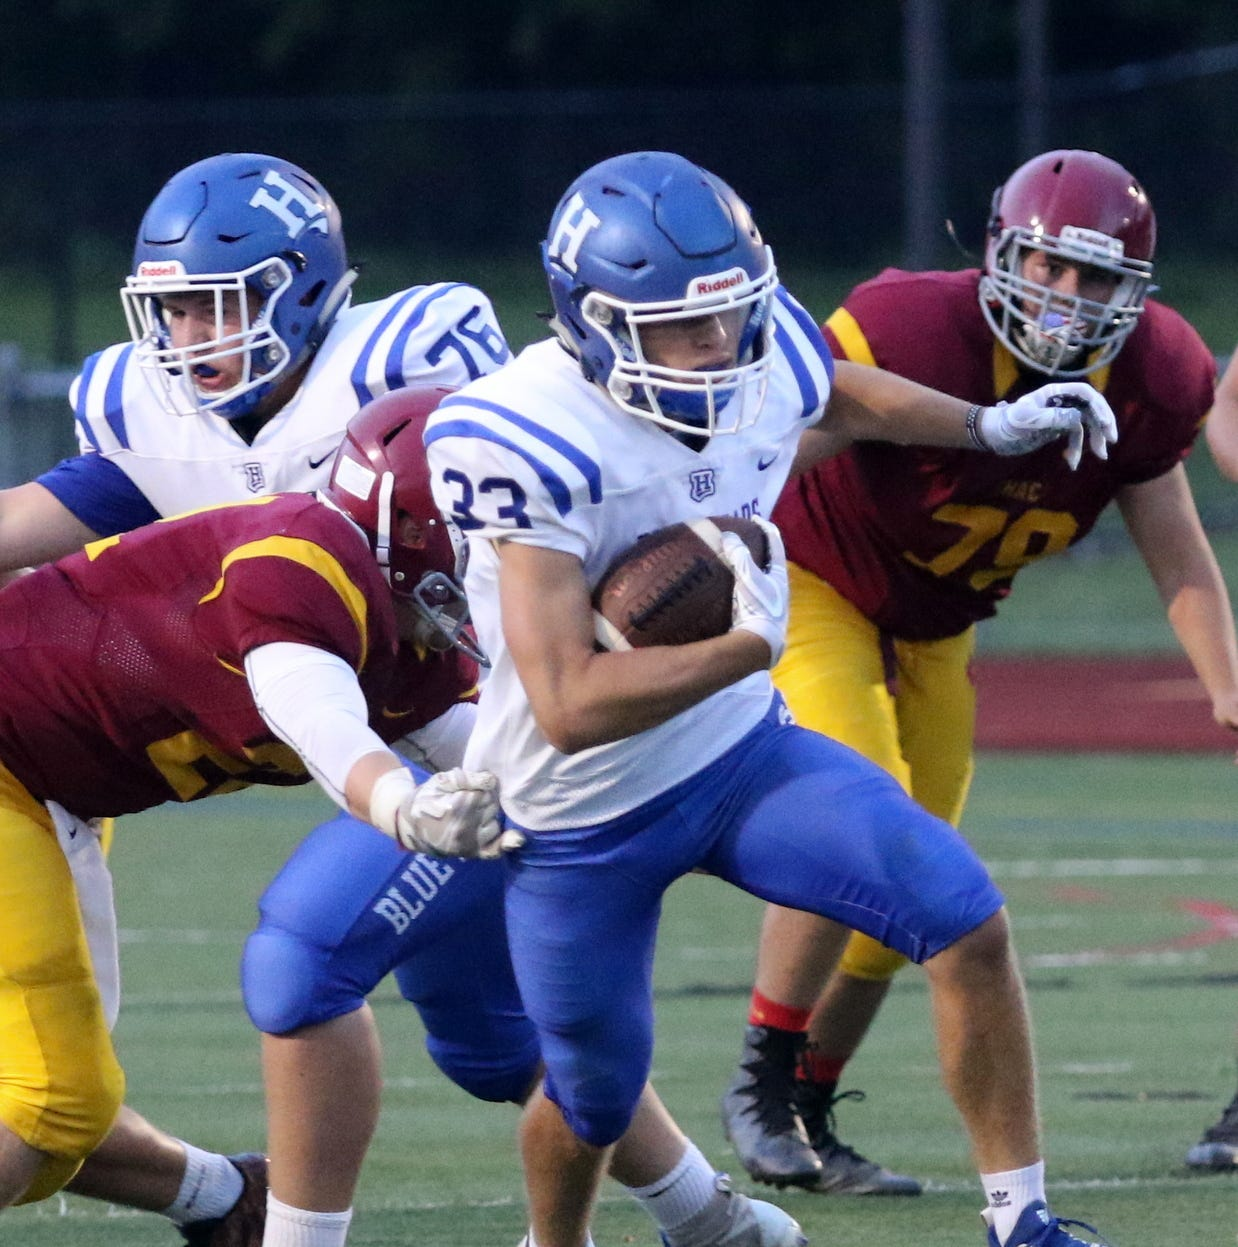 JV call-up Riley Loomis runs for 232 yards as Horseheads rolls past Ithaca